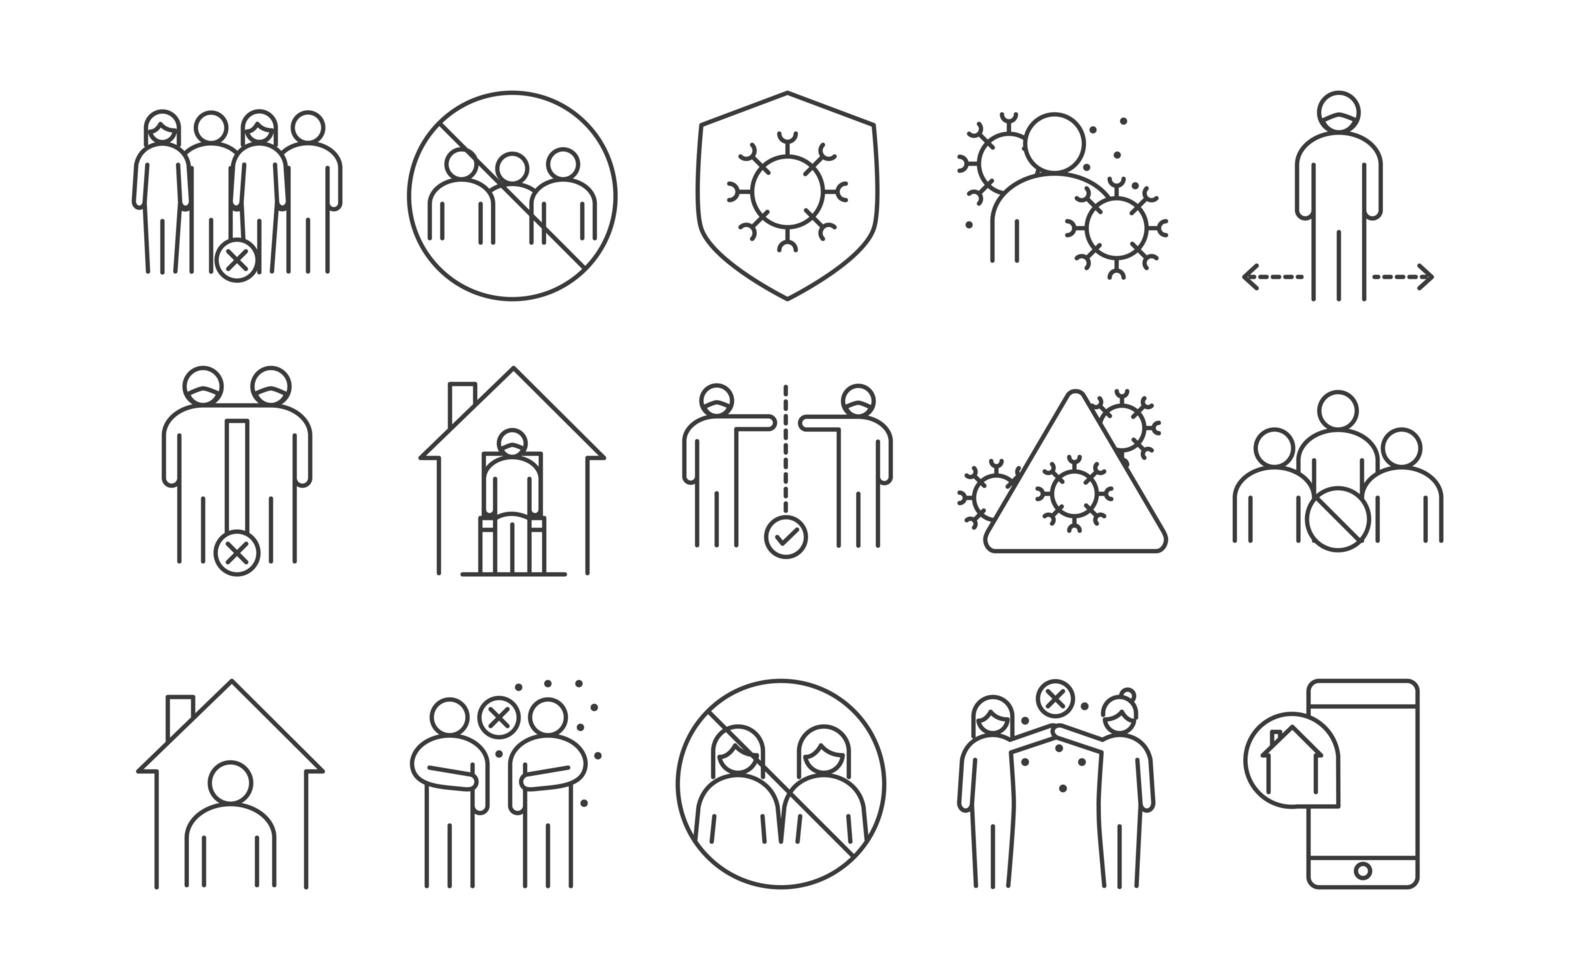 Viral infection single-line icon set  vector